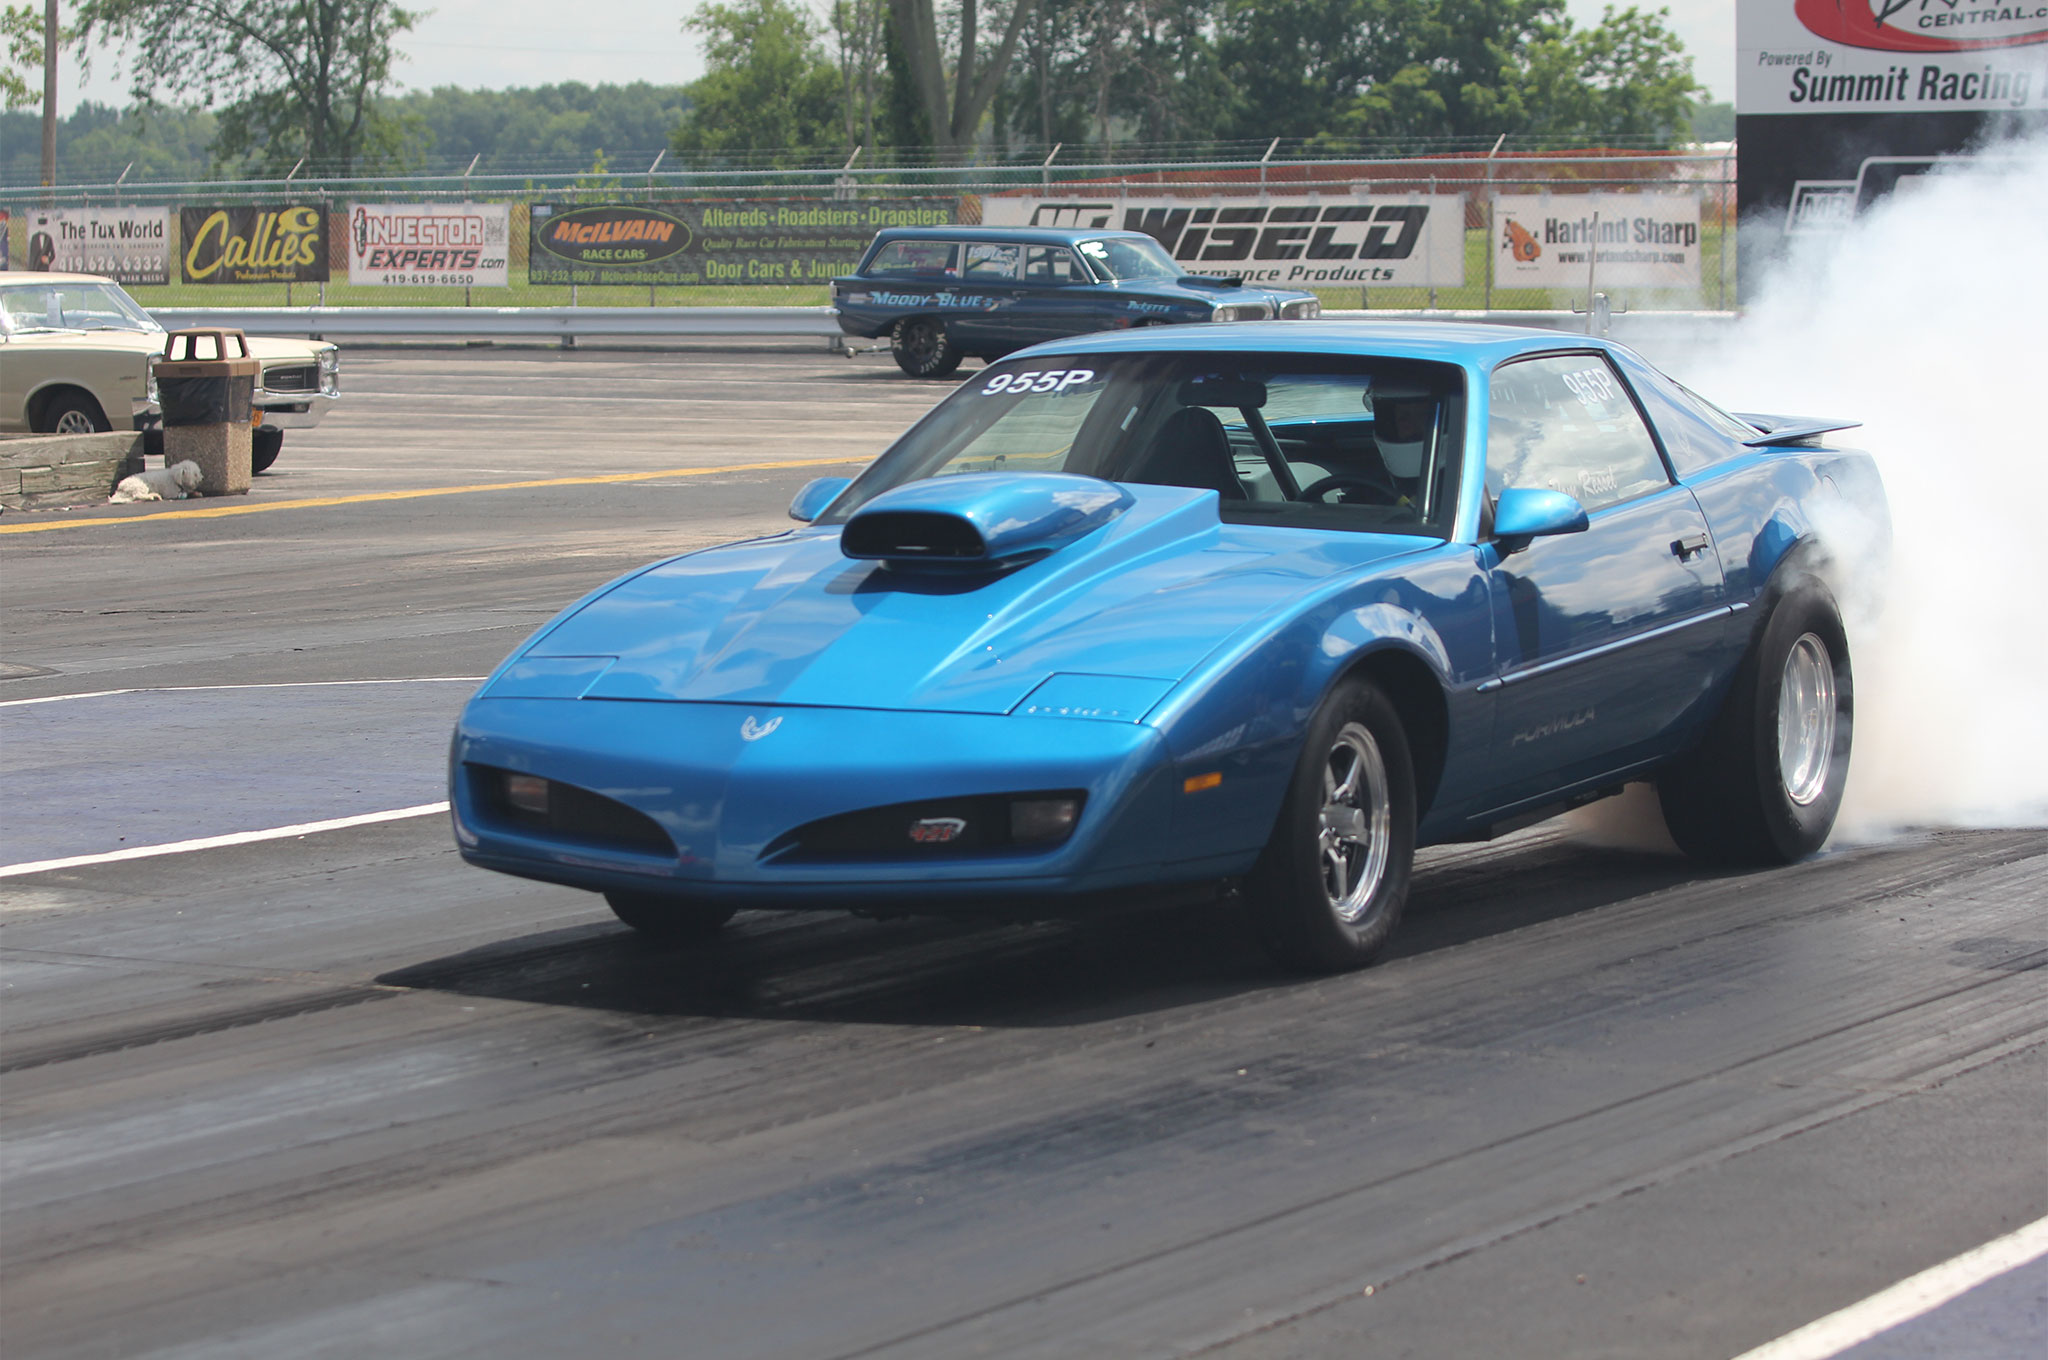 Car show, drag racing, swap meet, manufacturer's midway, and $1-a-pound ice cream. The Ames Performance Tri-Power Pontiac Nationals has it all.